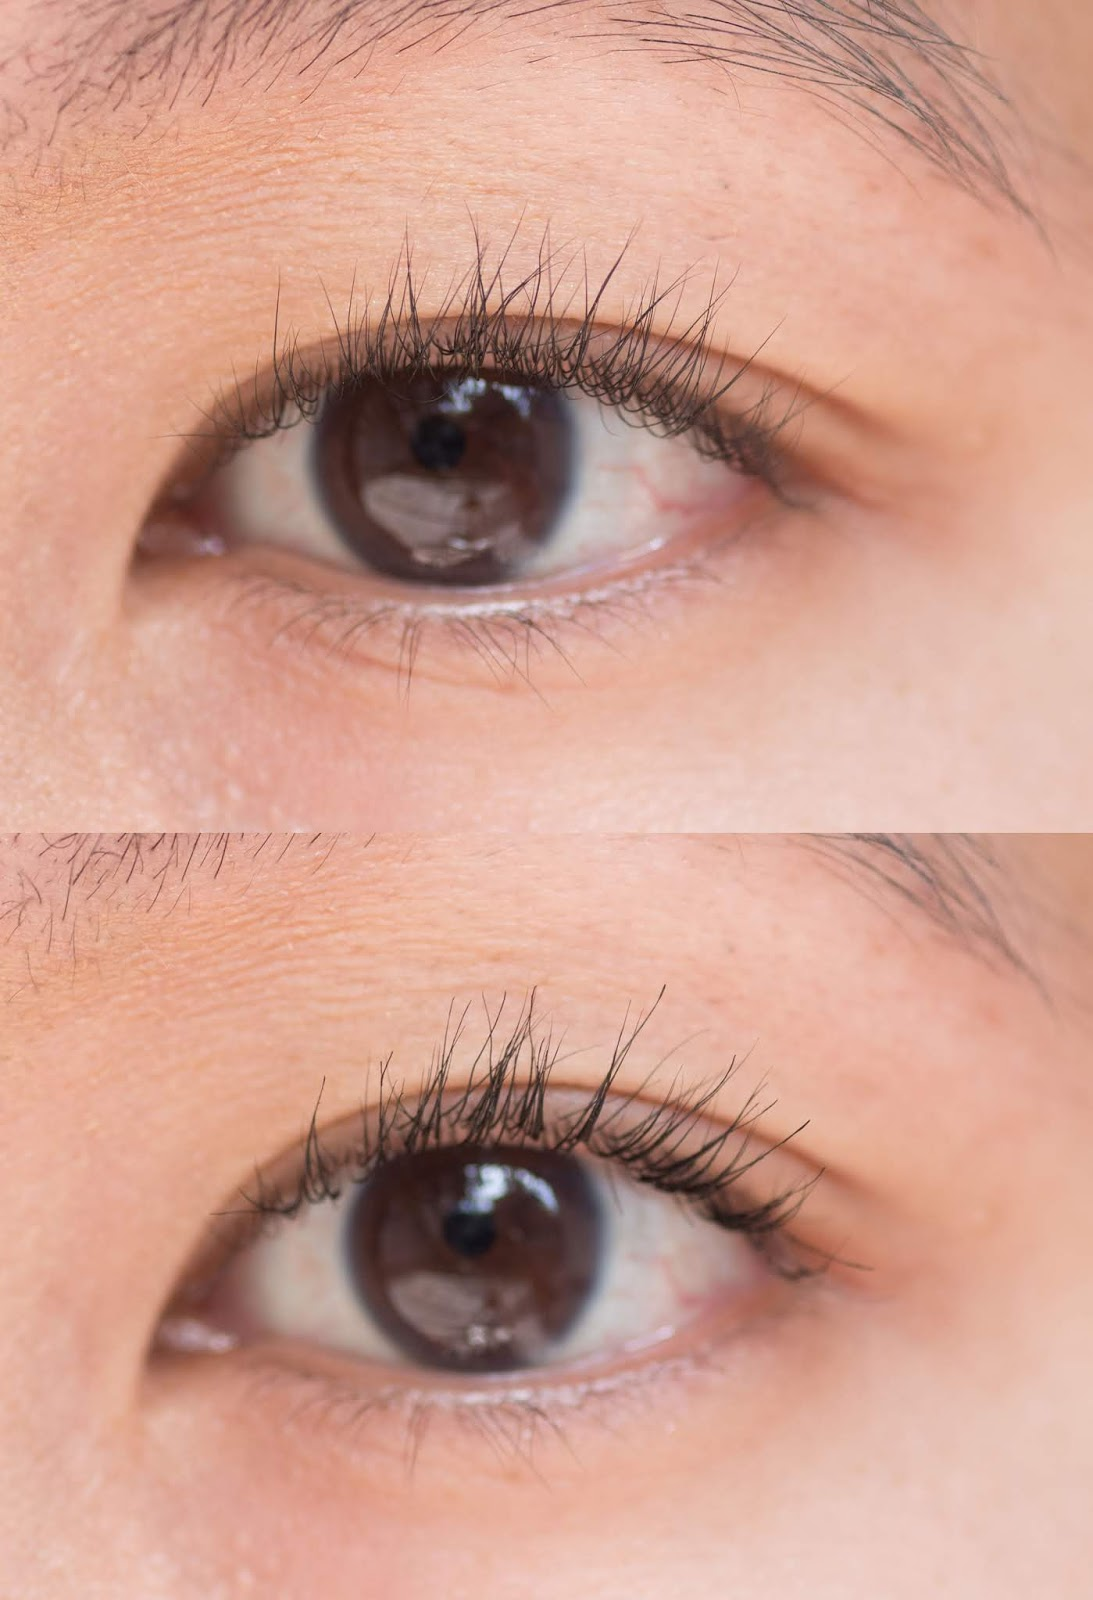 Glossier Lash Slick Mascara Before and After